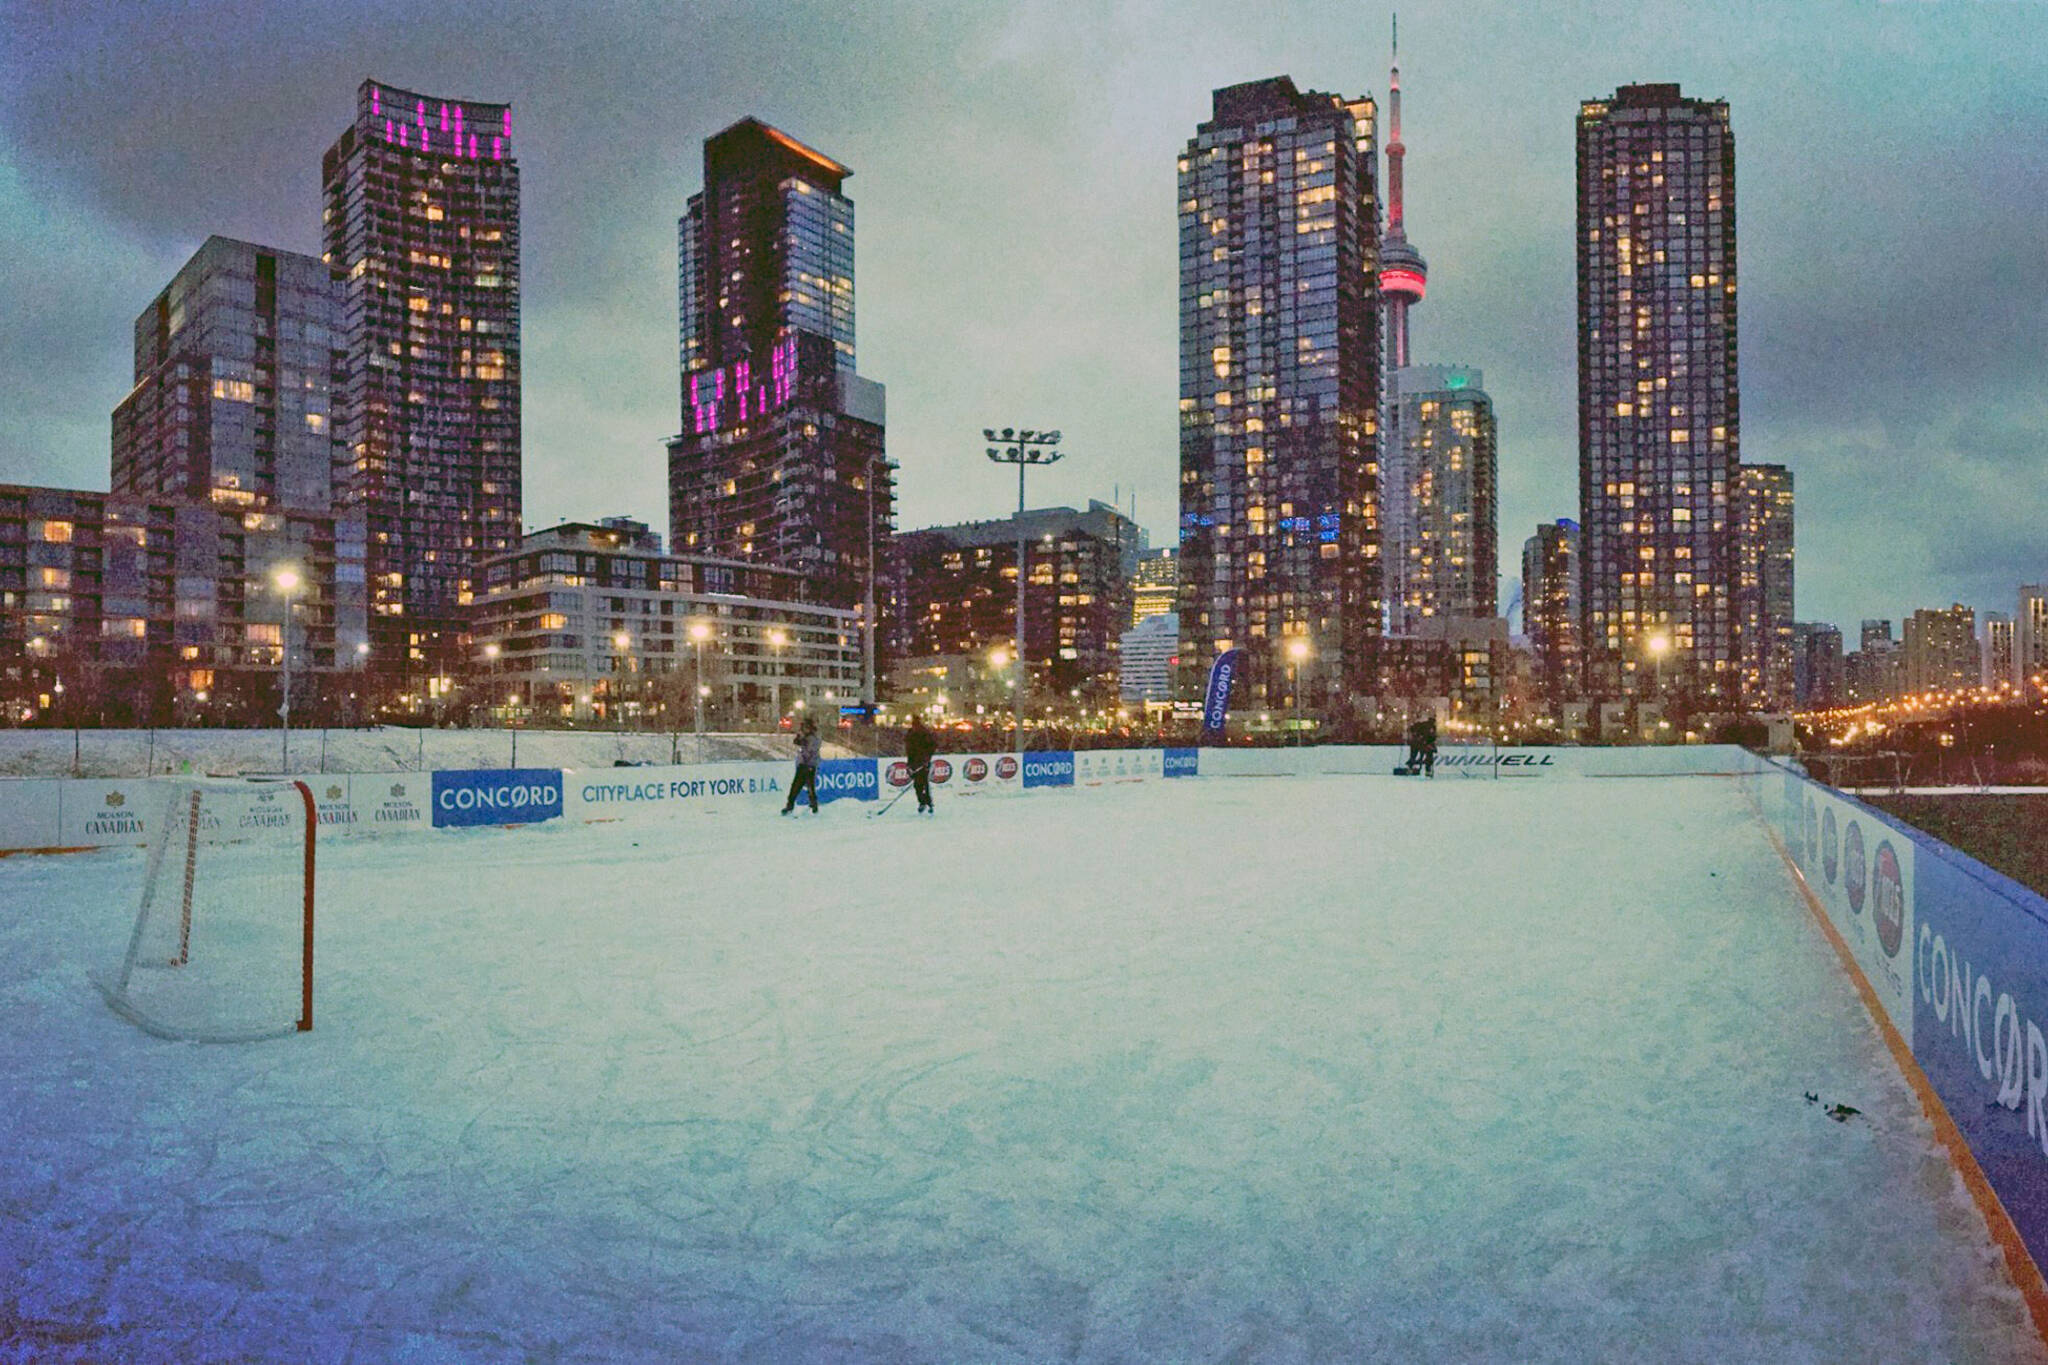 cityplace skating rink